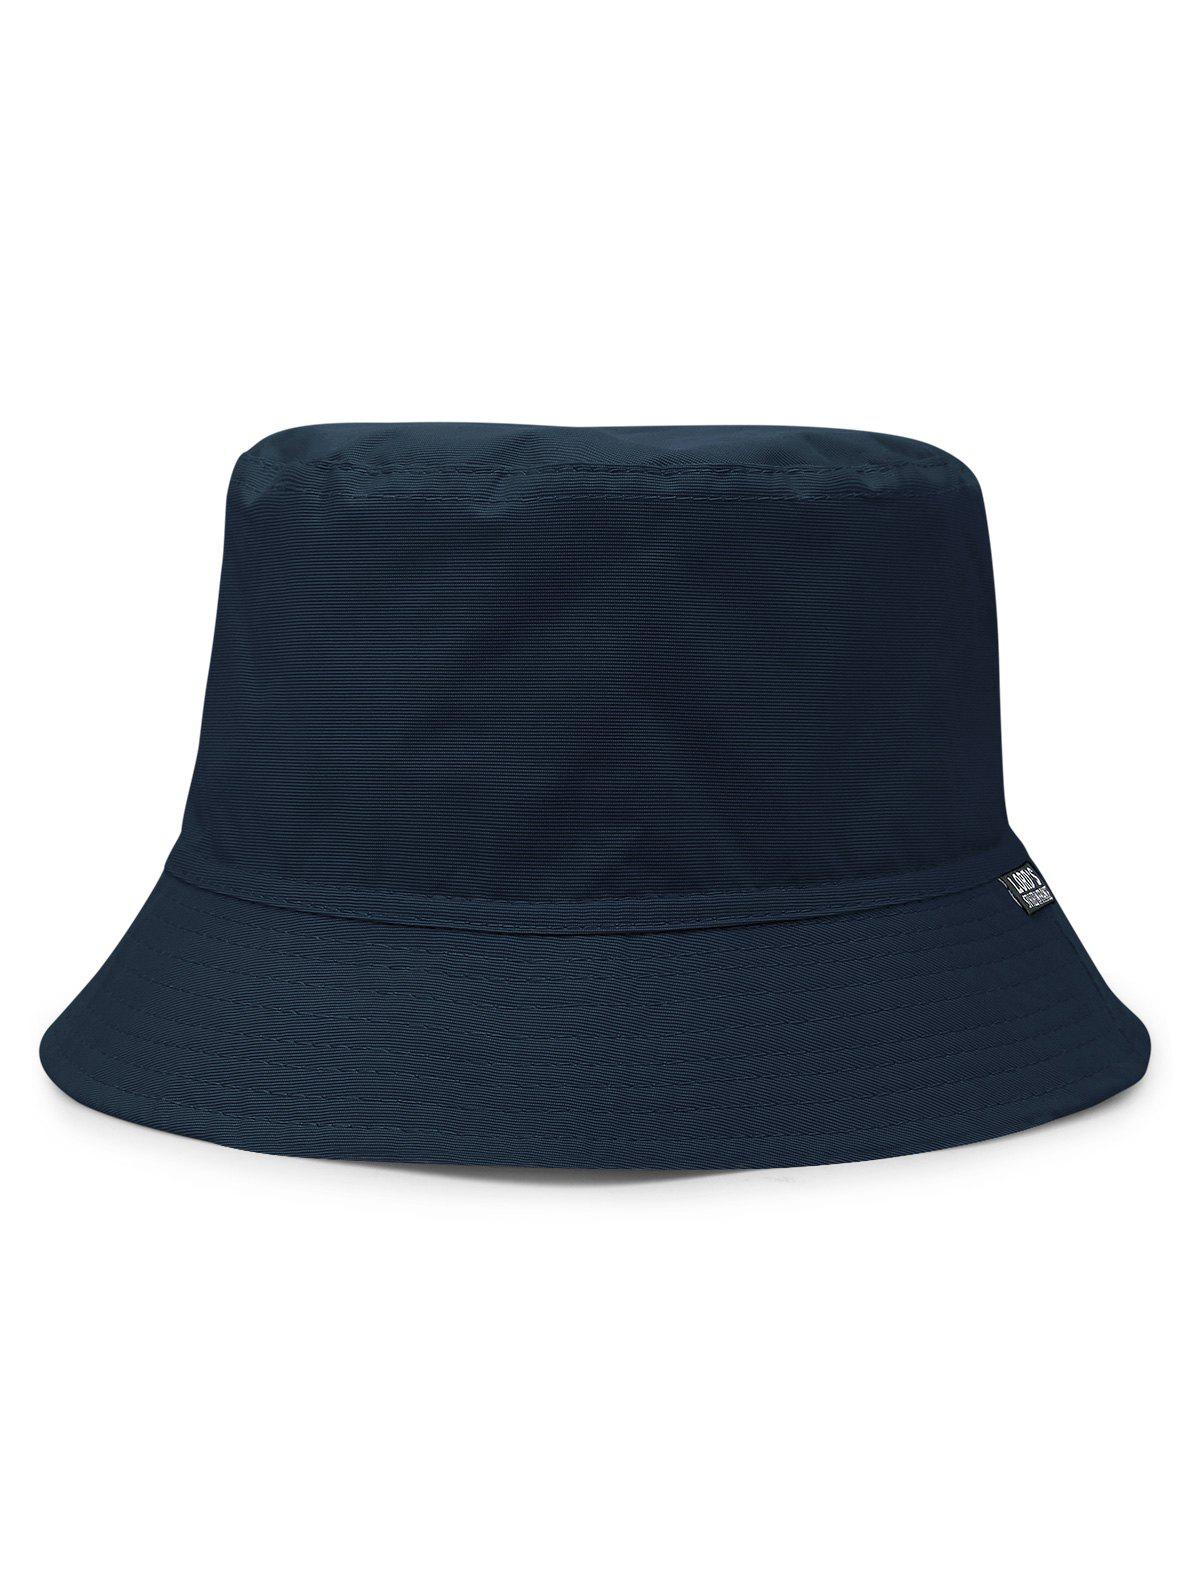 Outdoor Solid Color Flat Top Bucket Hat - DARK SLATE BLUE